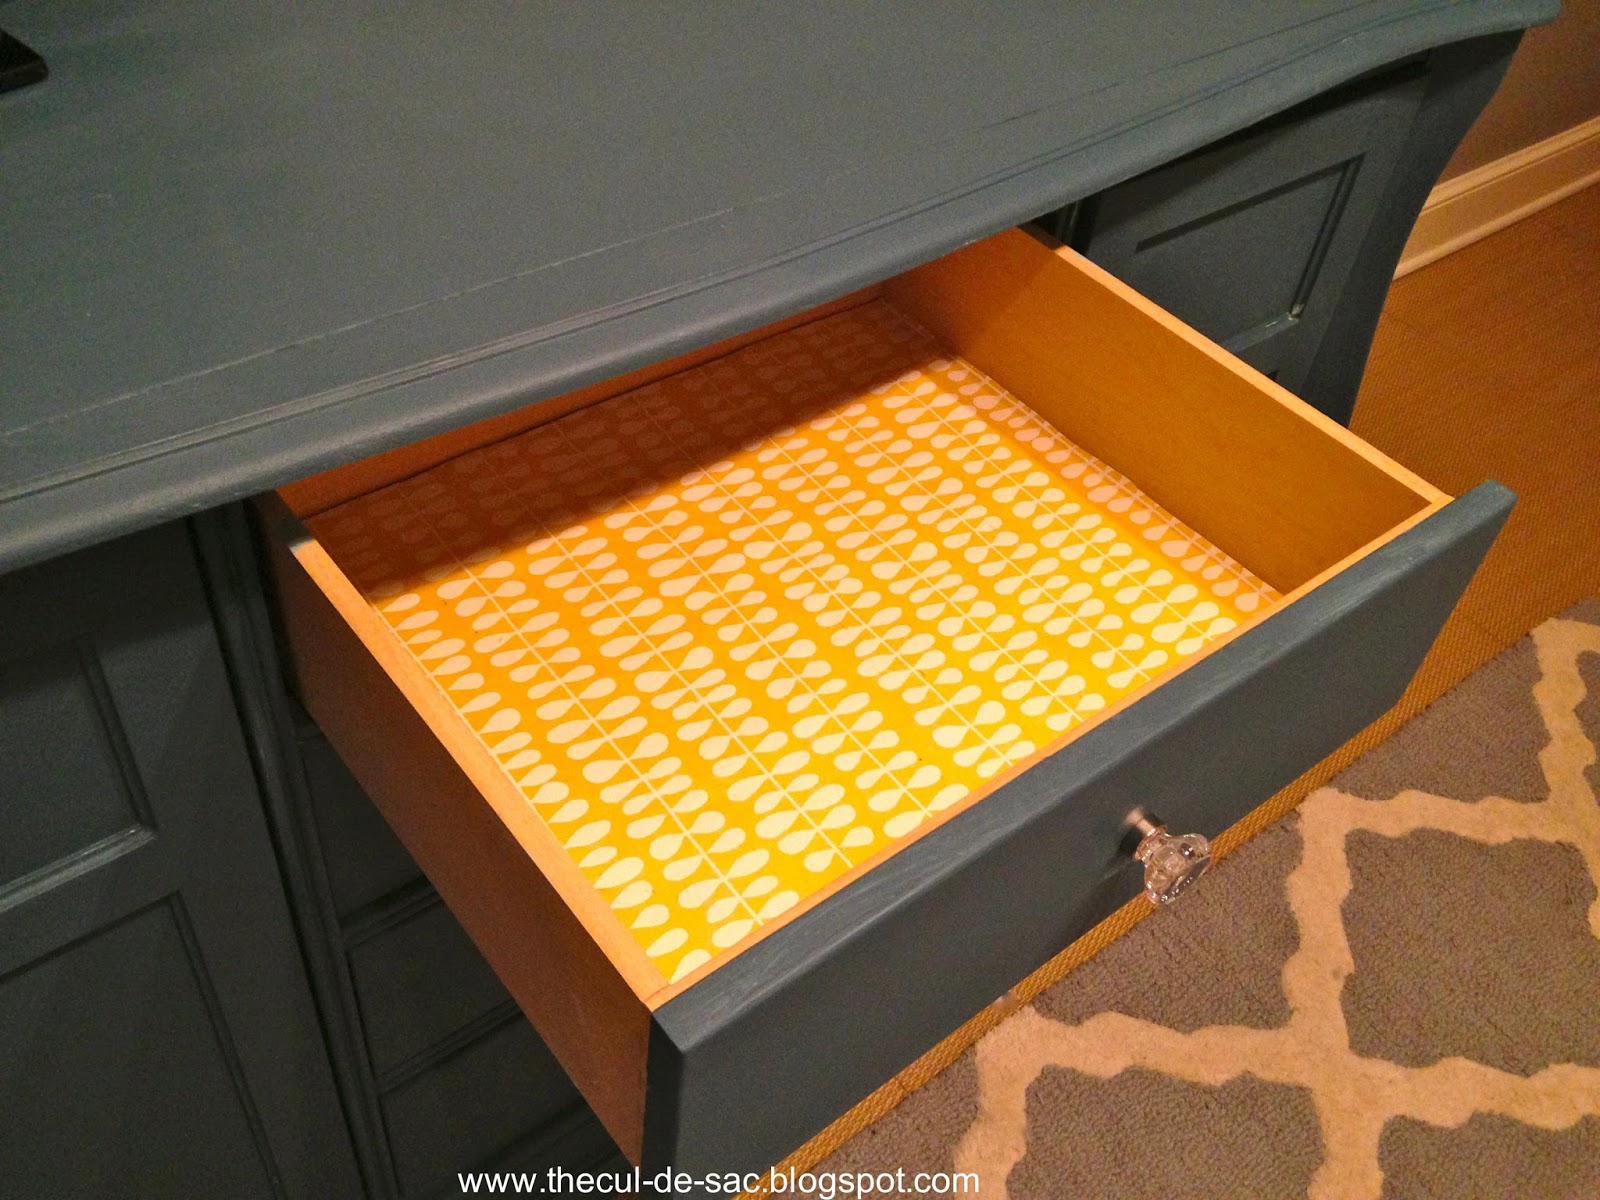 paper drawers Find great deals on ebay for paper drawers and document drawer shop with confidence.